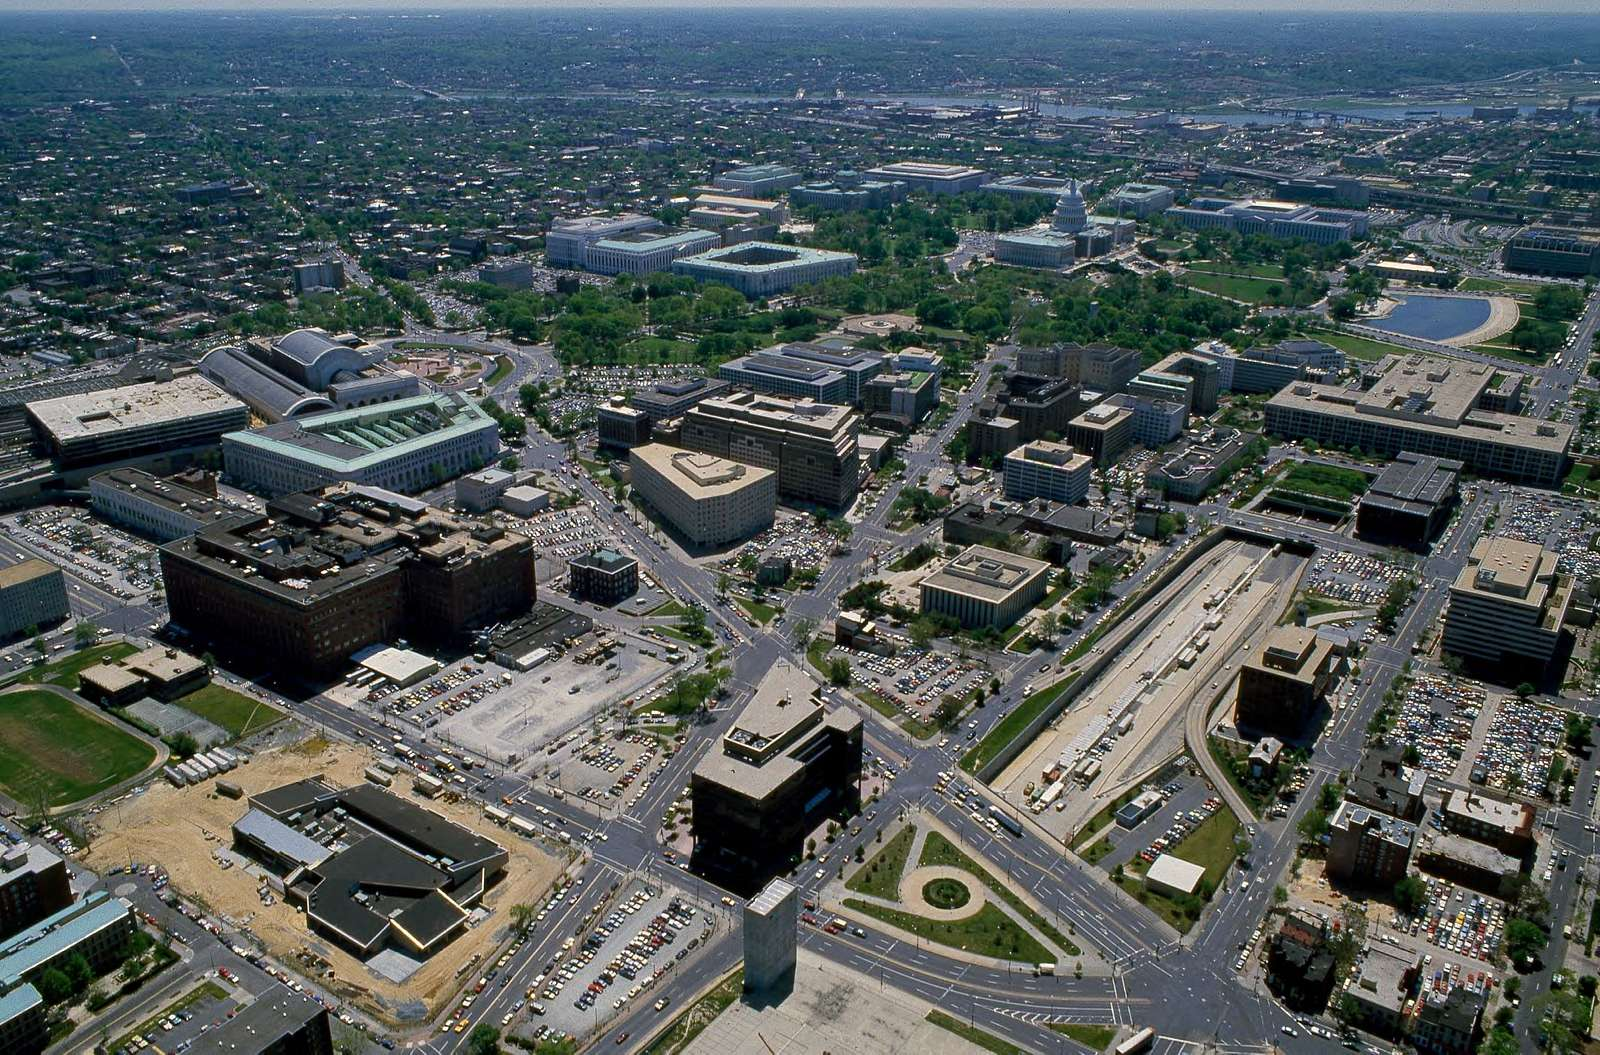 Aerial view of Washington, D.C. showing Capitol Hill and Union Station area